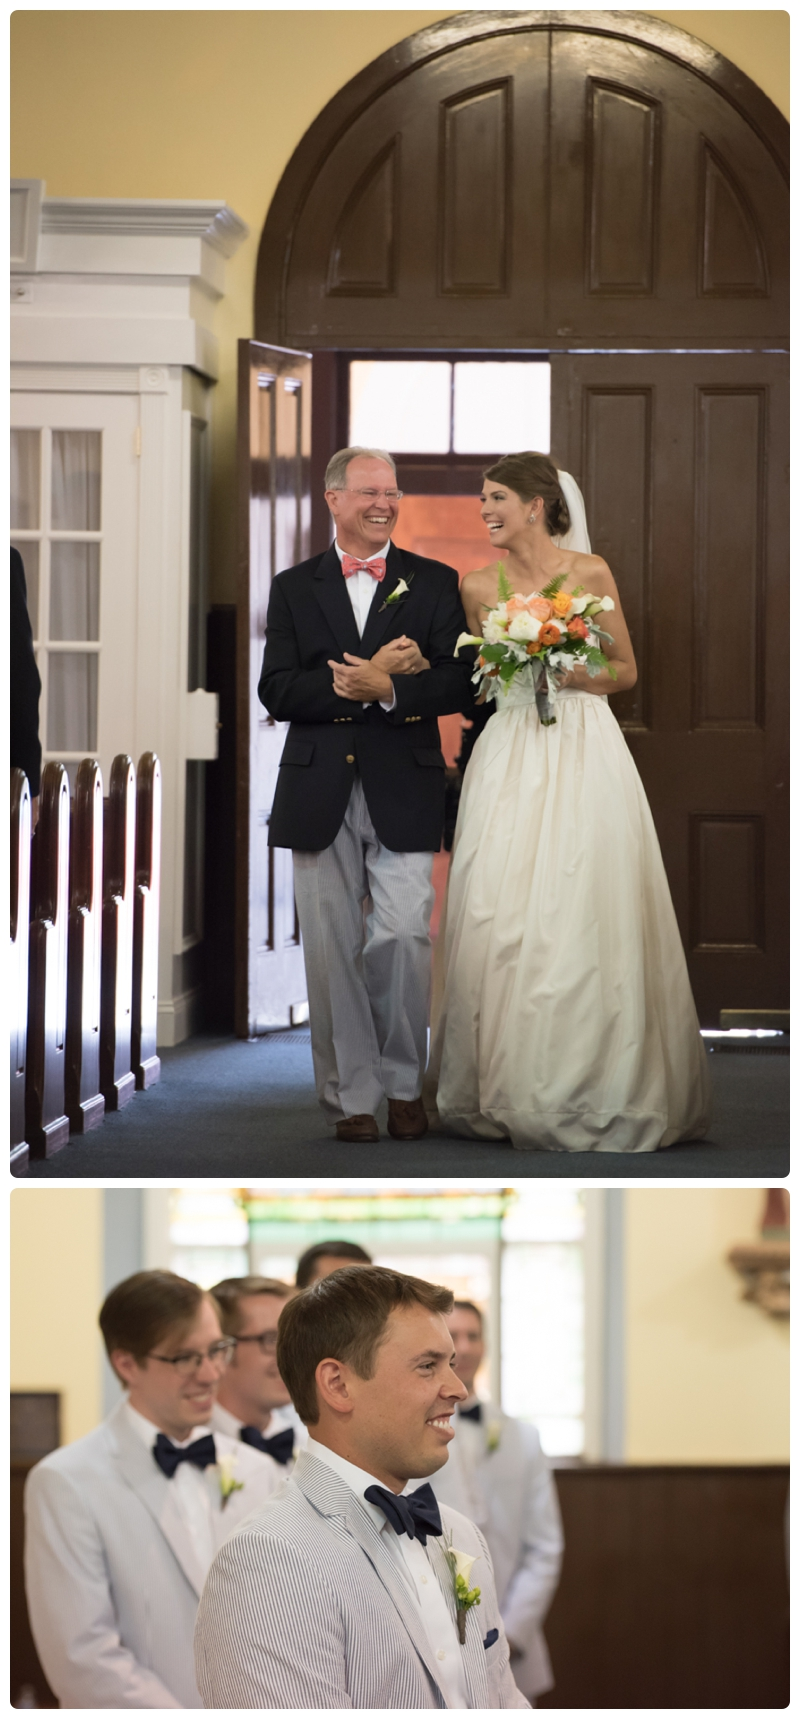 Fourth of July Wedding on the Potmac by Rachael Foster Photography_0016.jpg